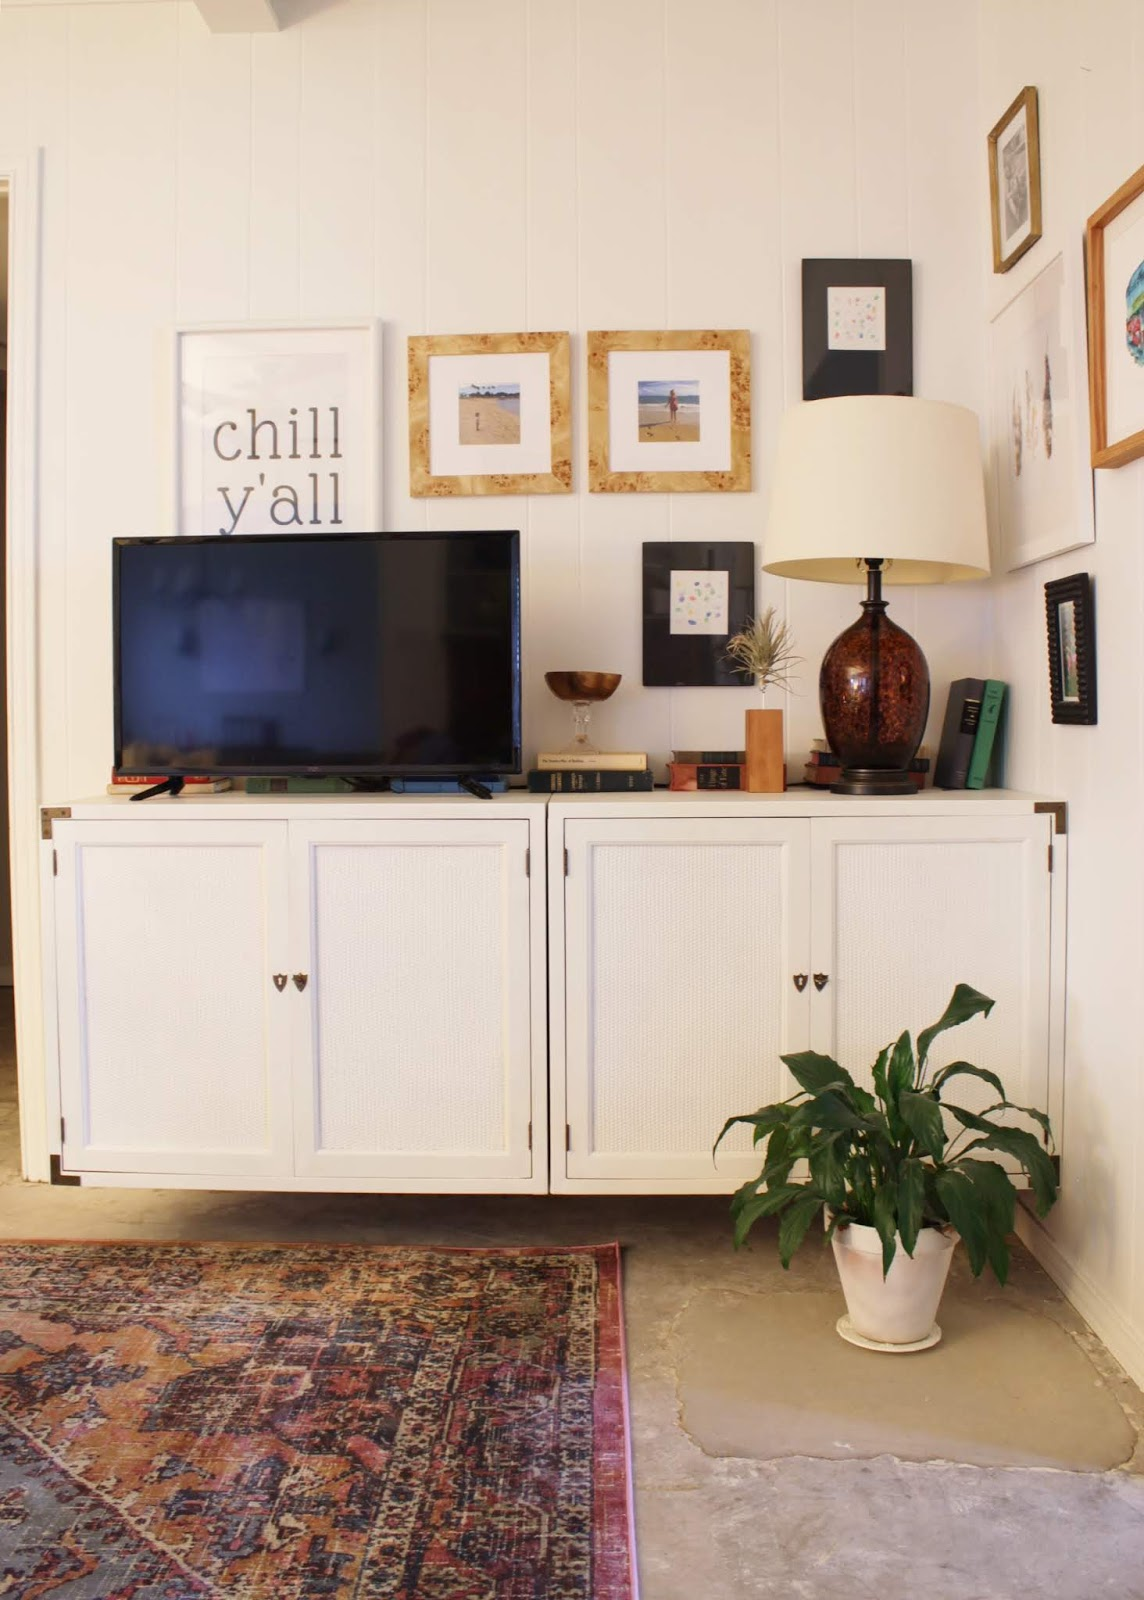 french cleat wall mount media cabinet- a modern way to update a secondhand cabinet | House Homemade